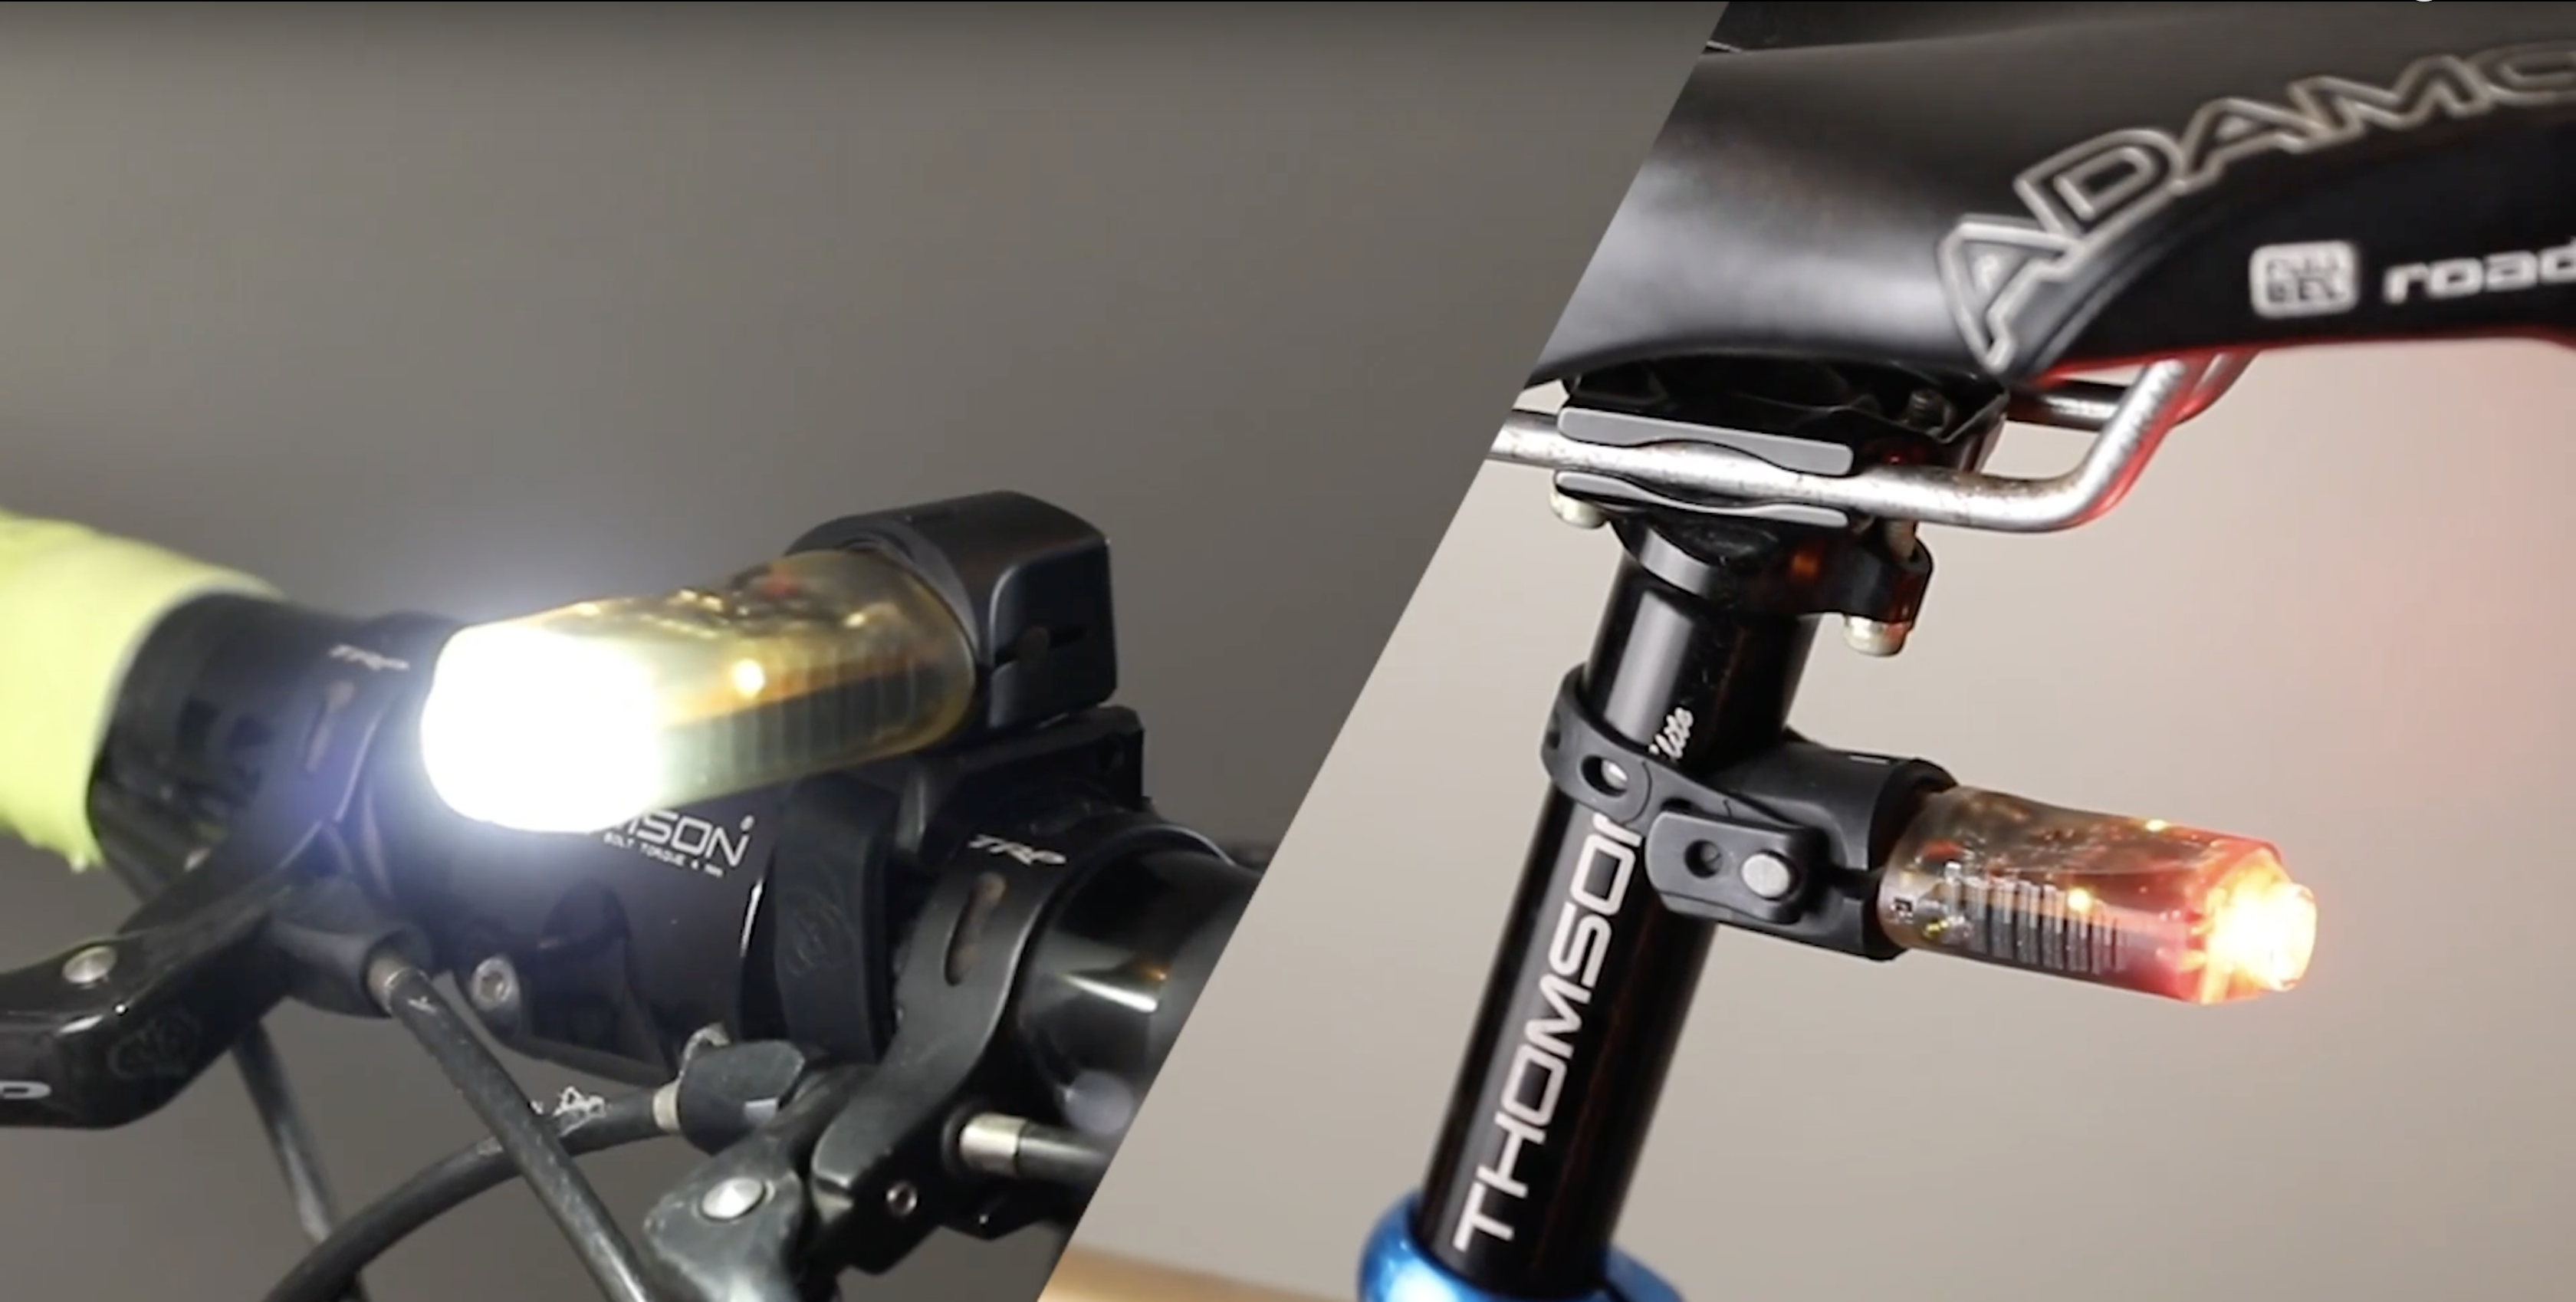 Illuminazione led per mtb luci led per mountain bike test led